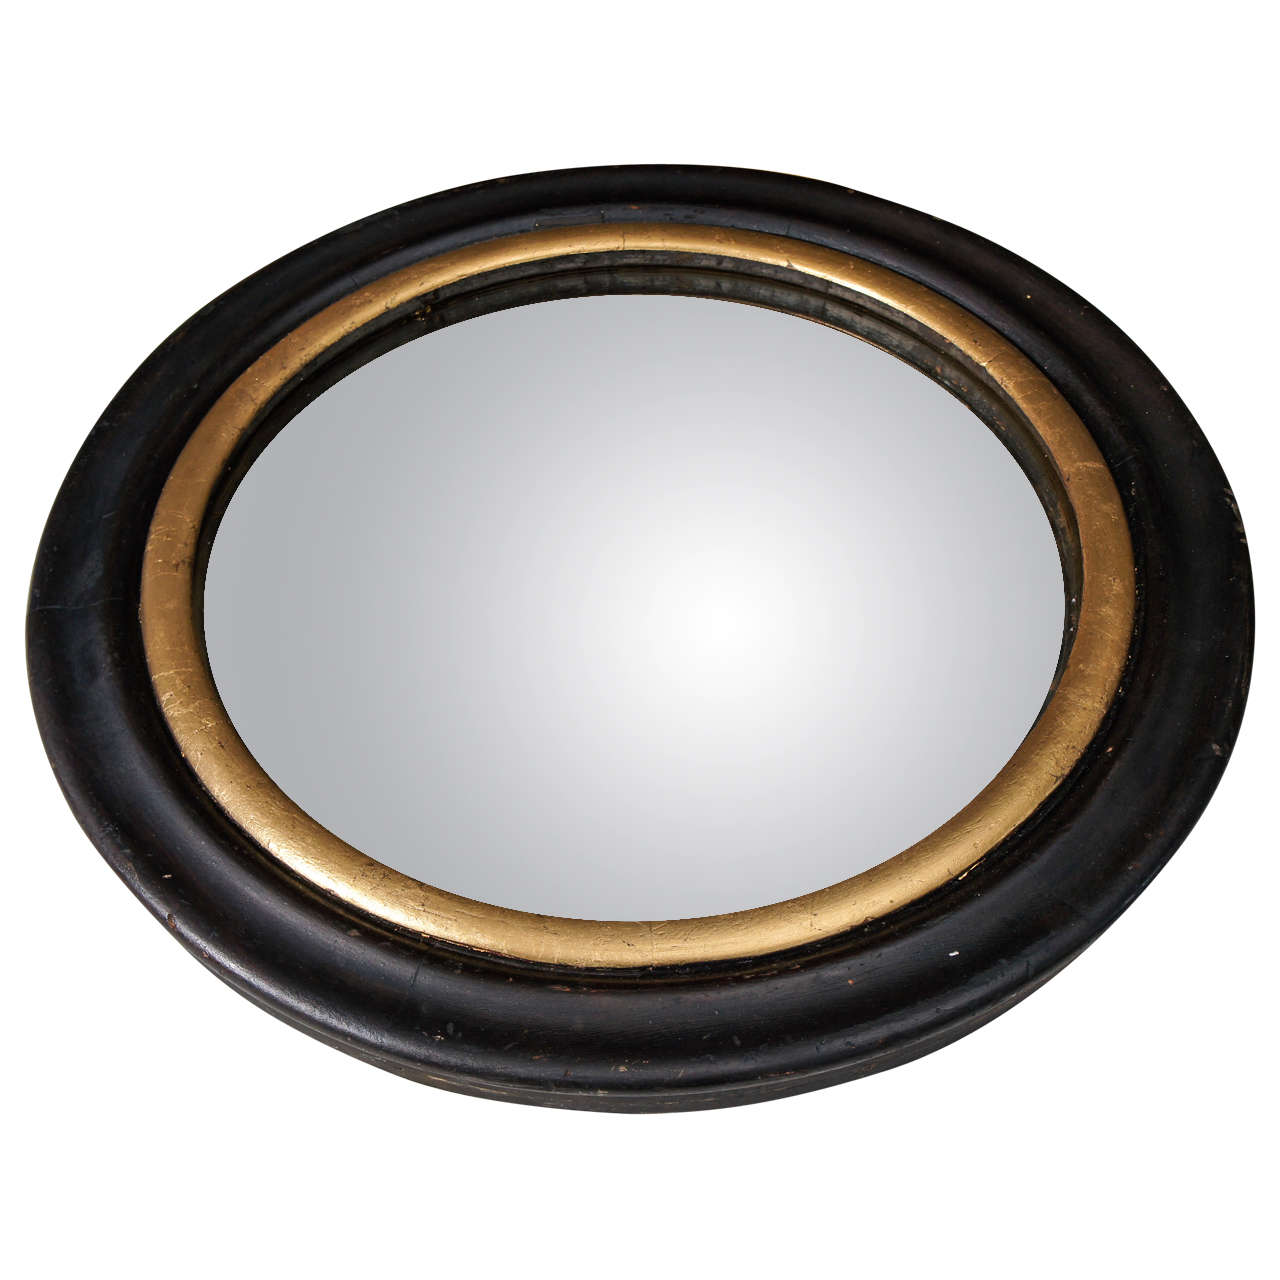 Circular frame with convex mirror for sale at 1stdibs for Convex mirror for home